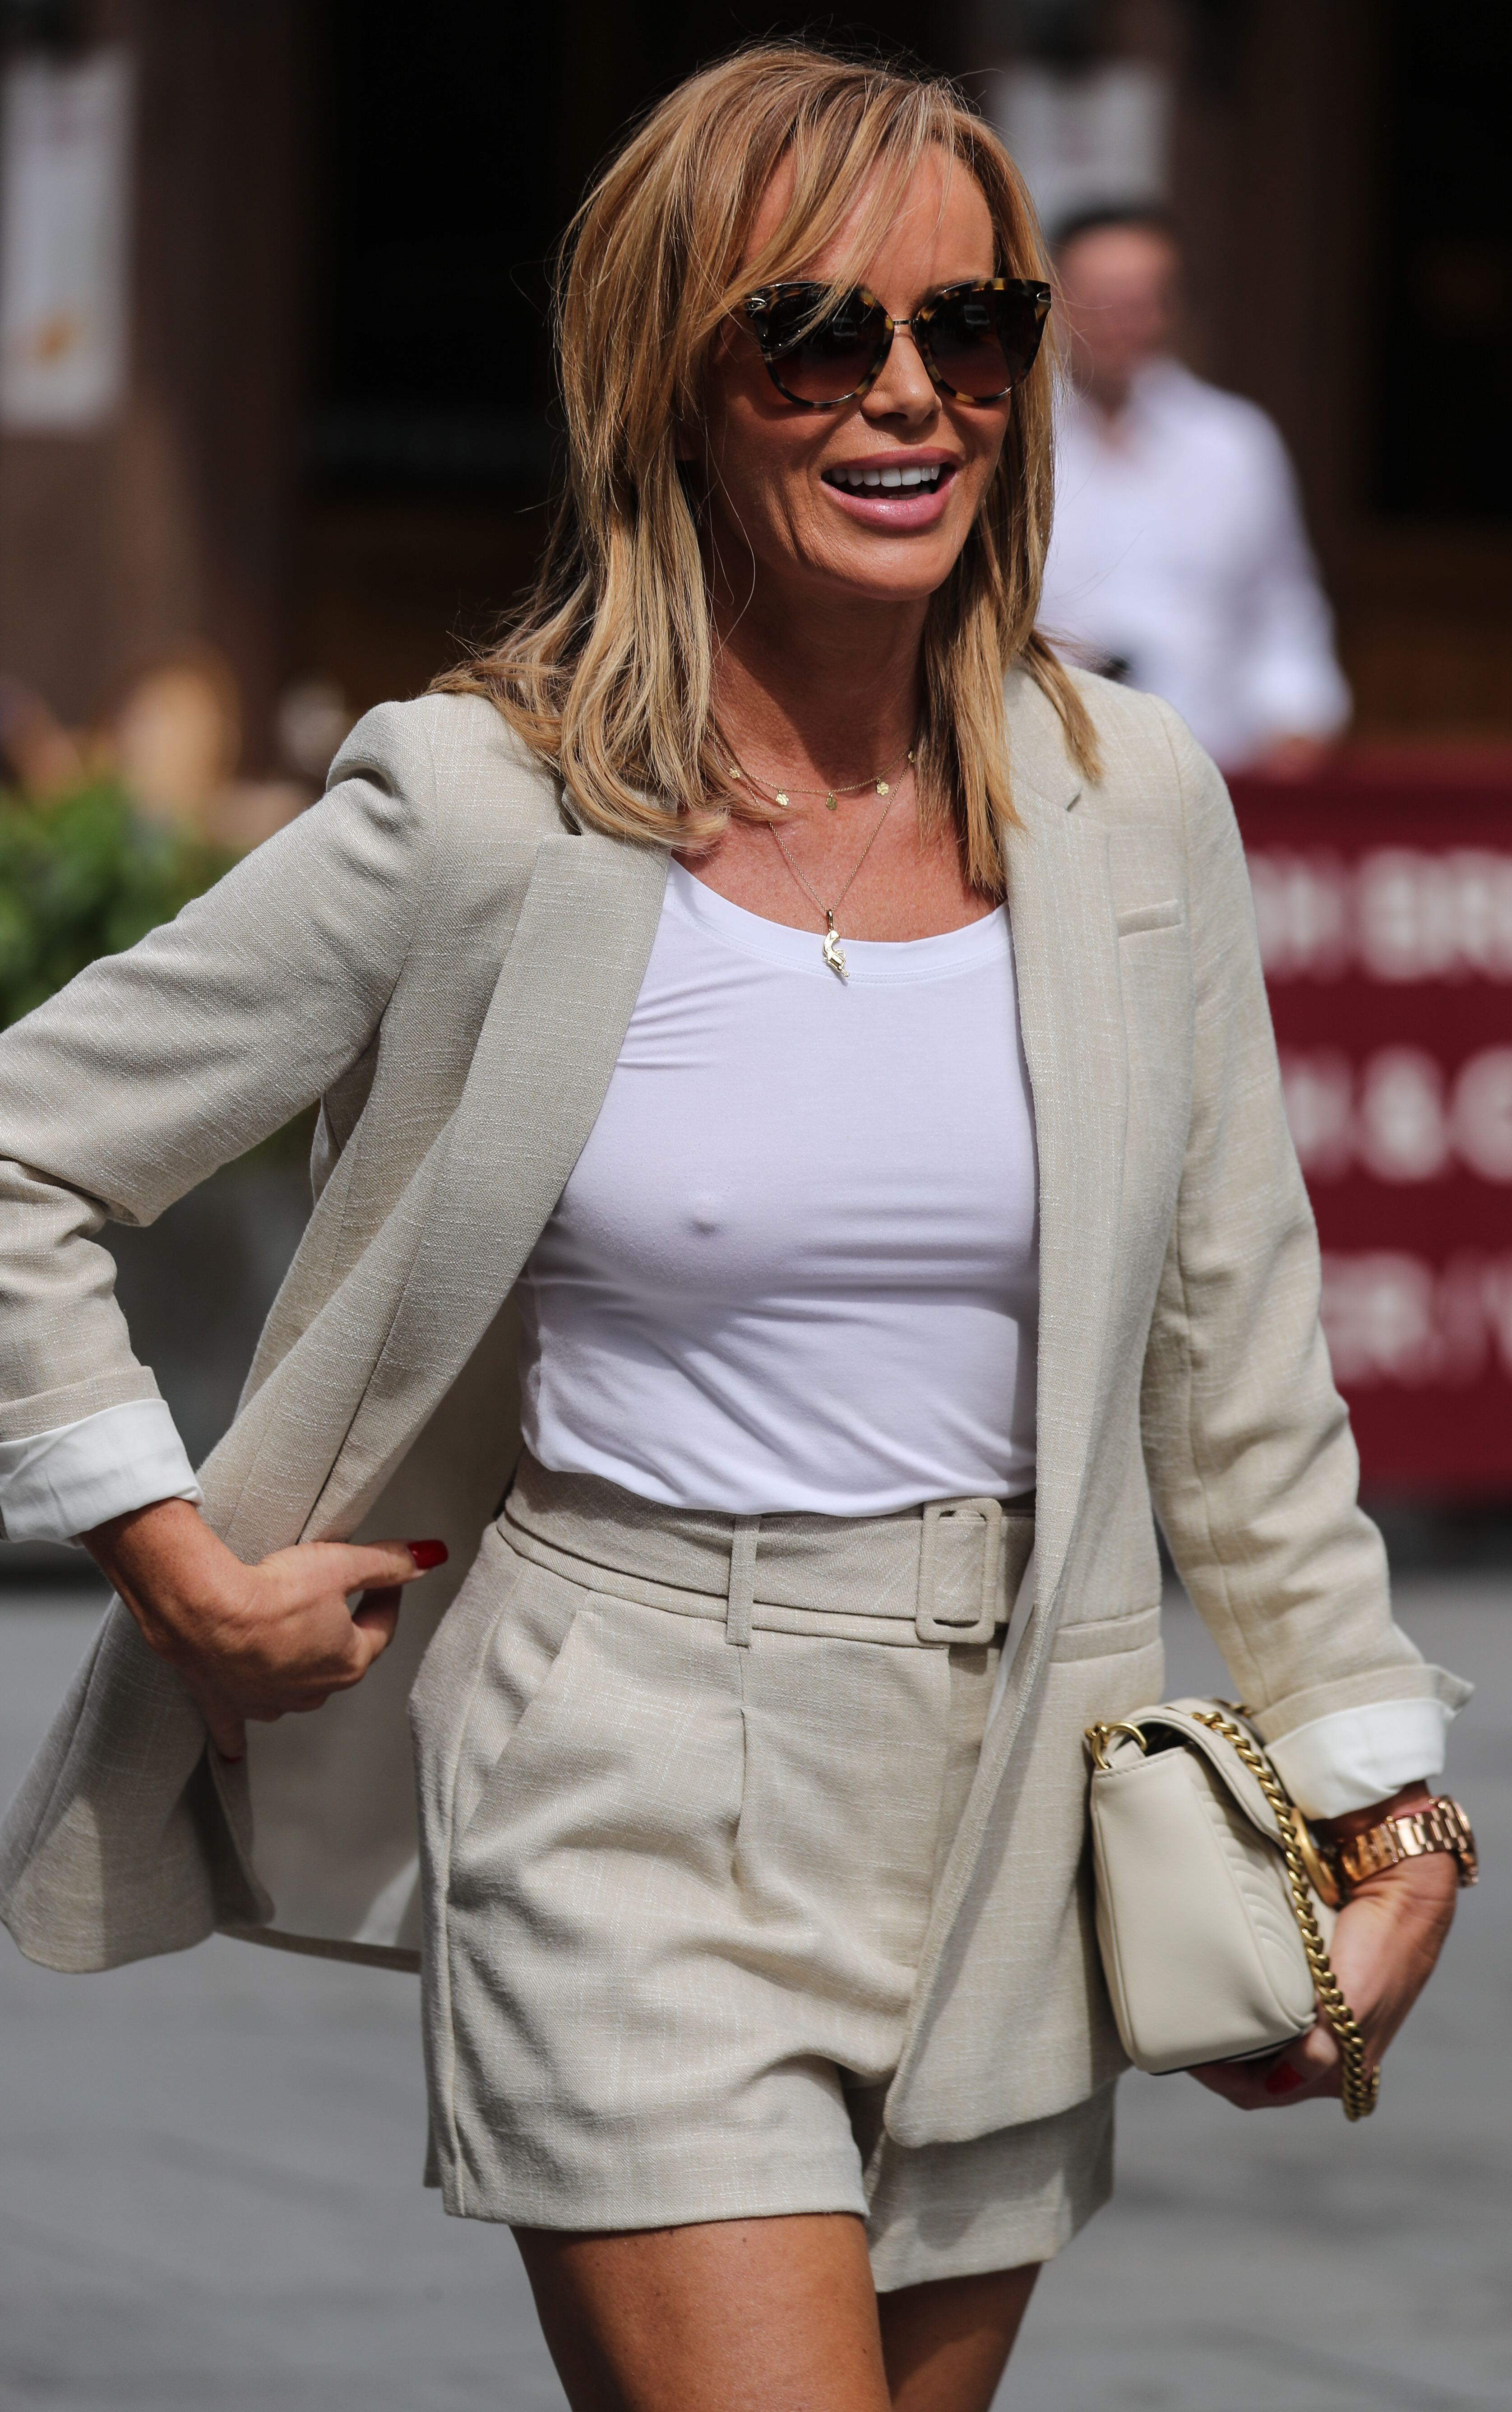 Amanda Holden (pokies) Leaving Heart Radio in London 14 July, 2020